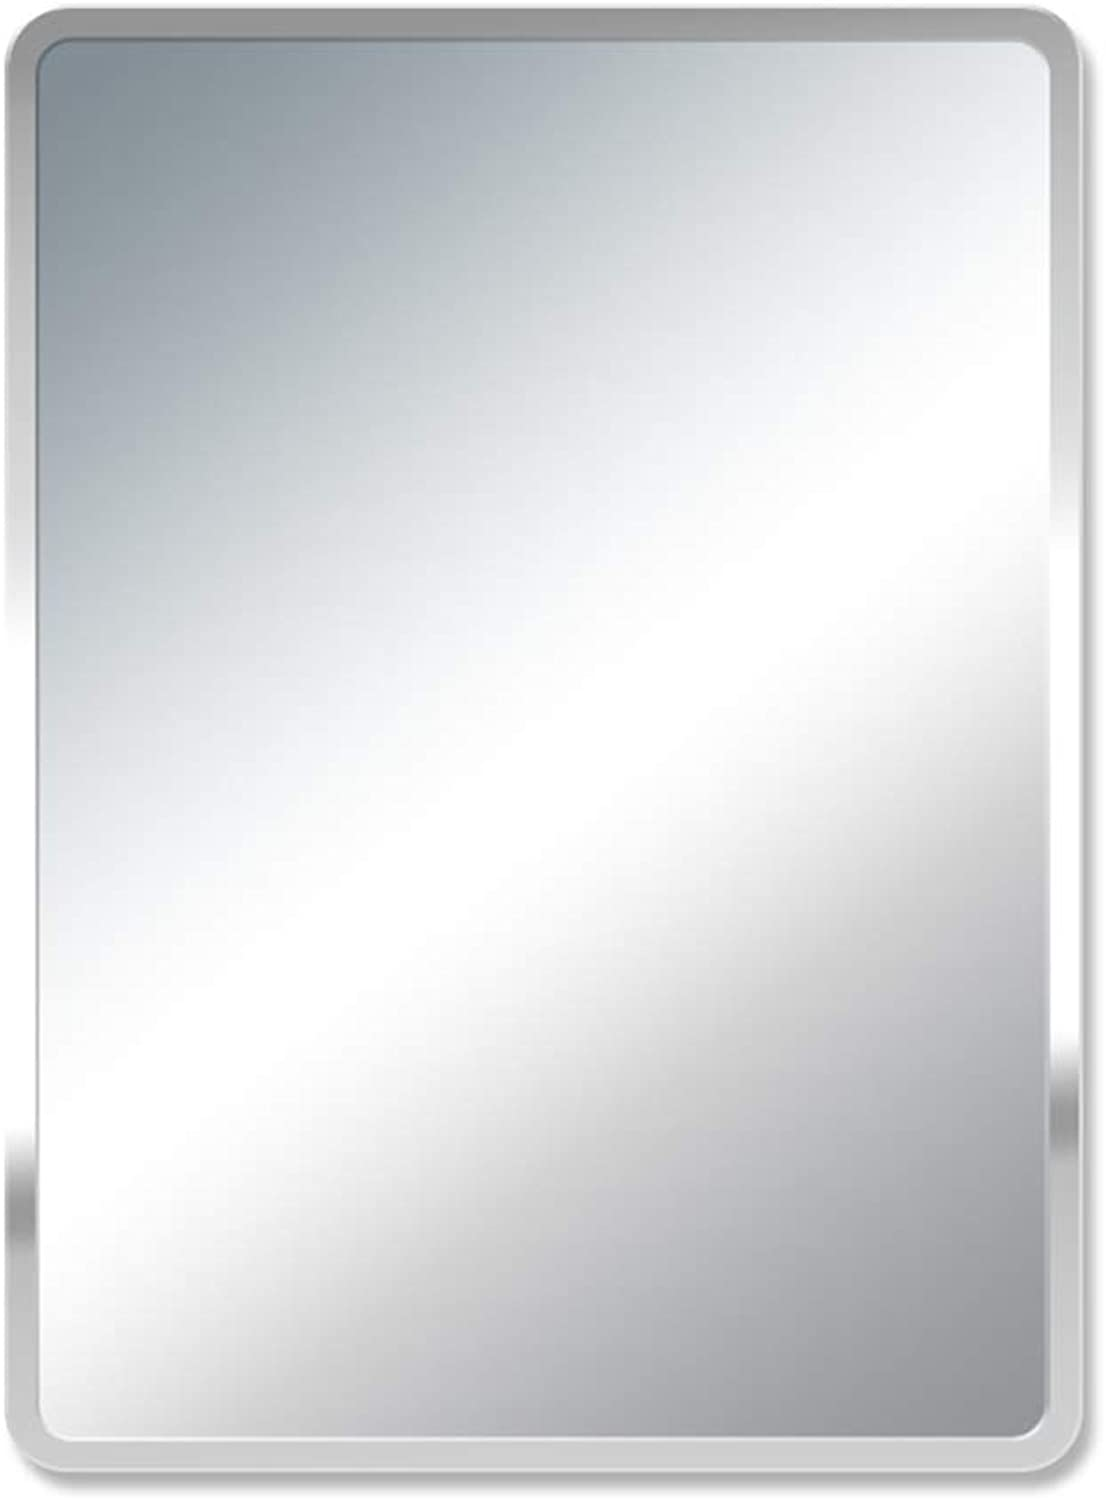 Nclon Rectangle Hanging Wall Mirror, 14 x18 (35x45cm) Frameless Beveled Hanging Wall Mirror Bathroom Restroom Vanity Bathroom Mirror-35x45cm